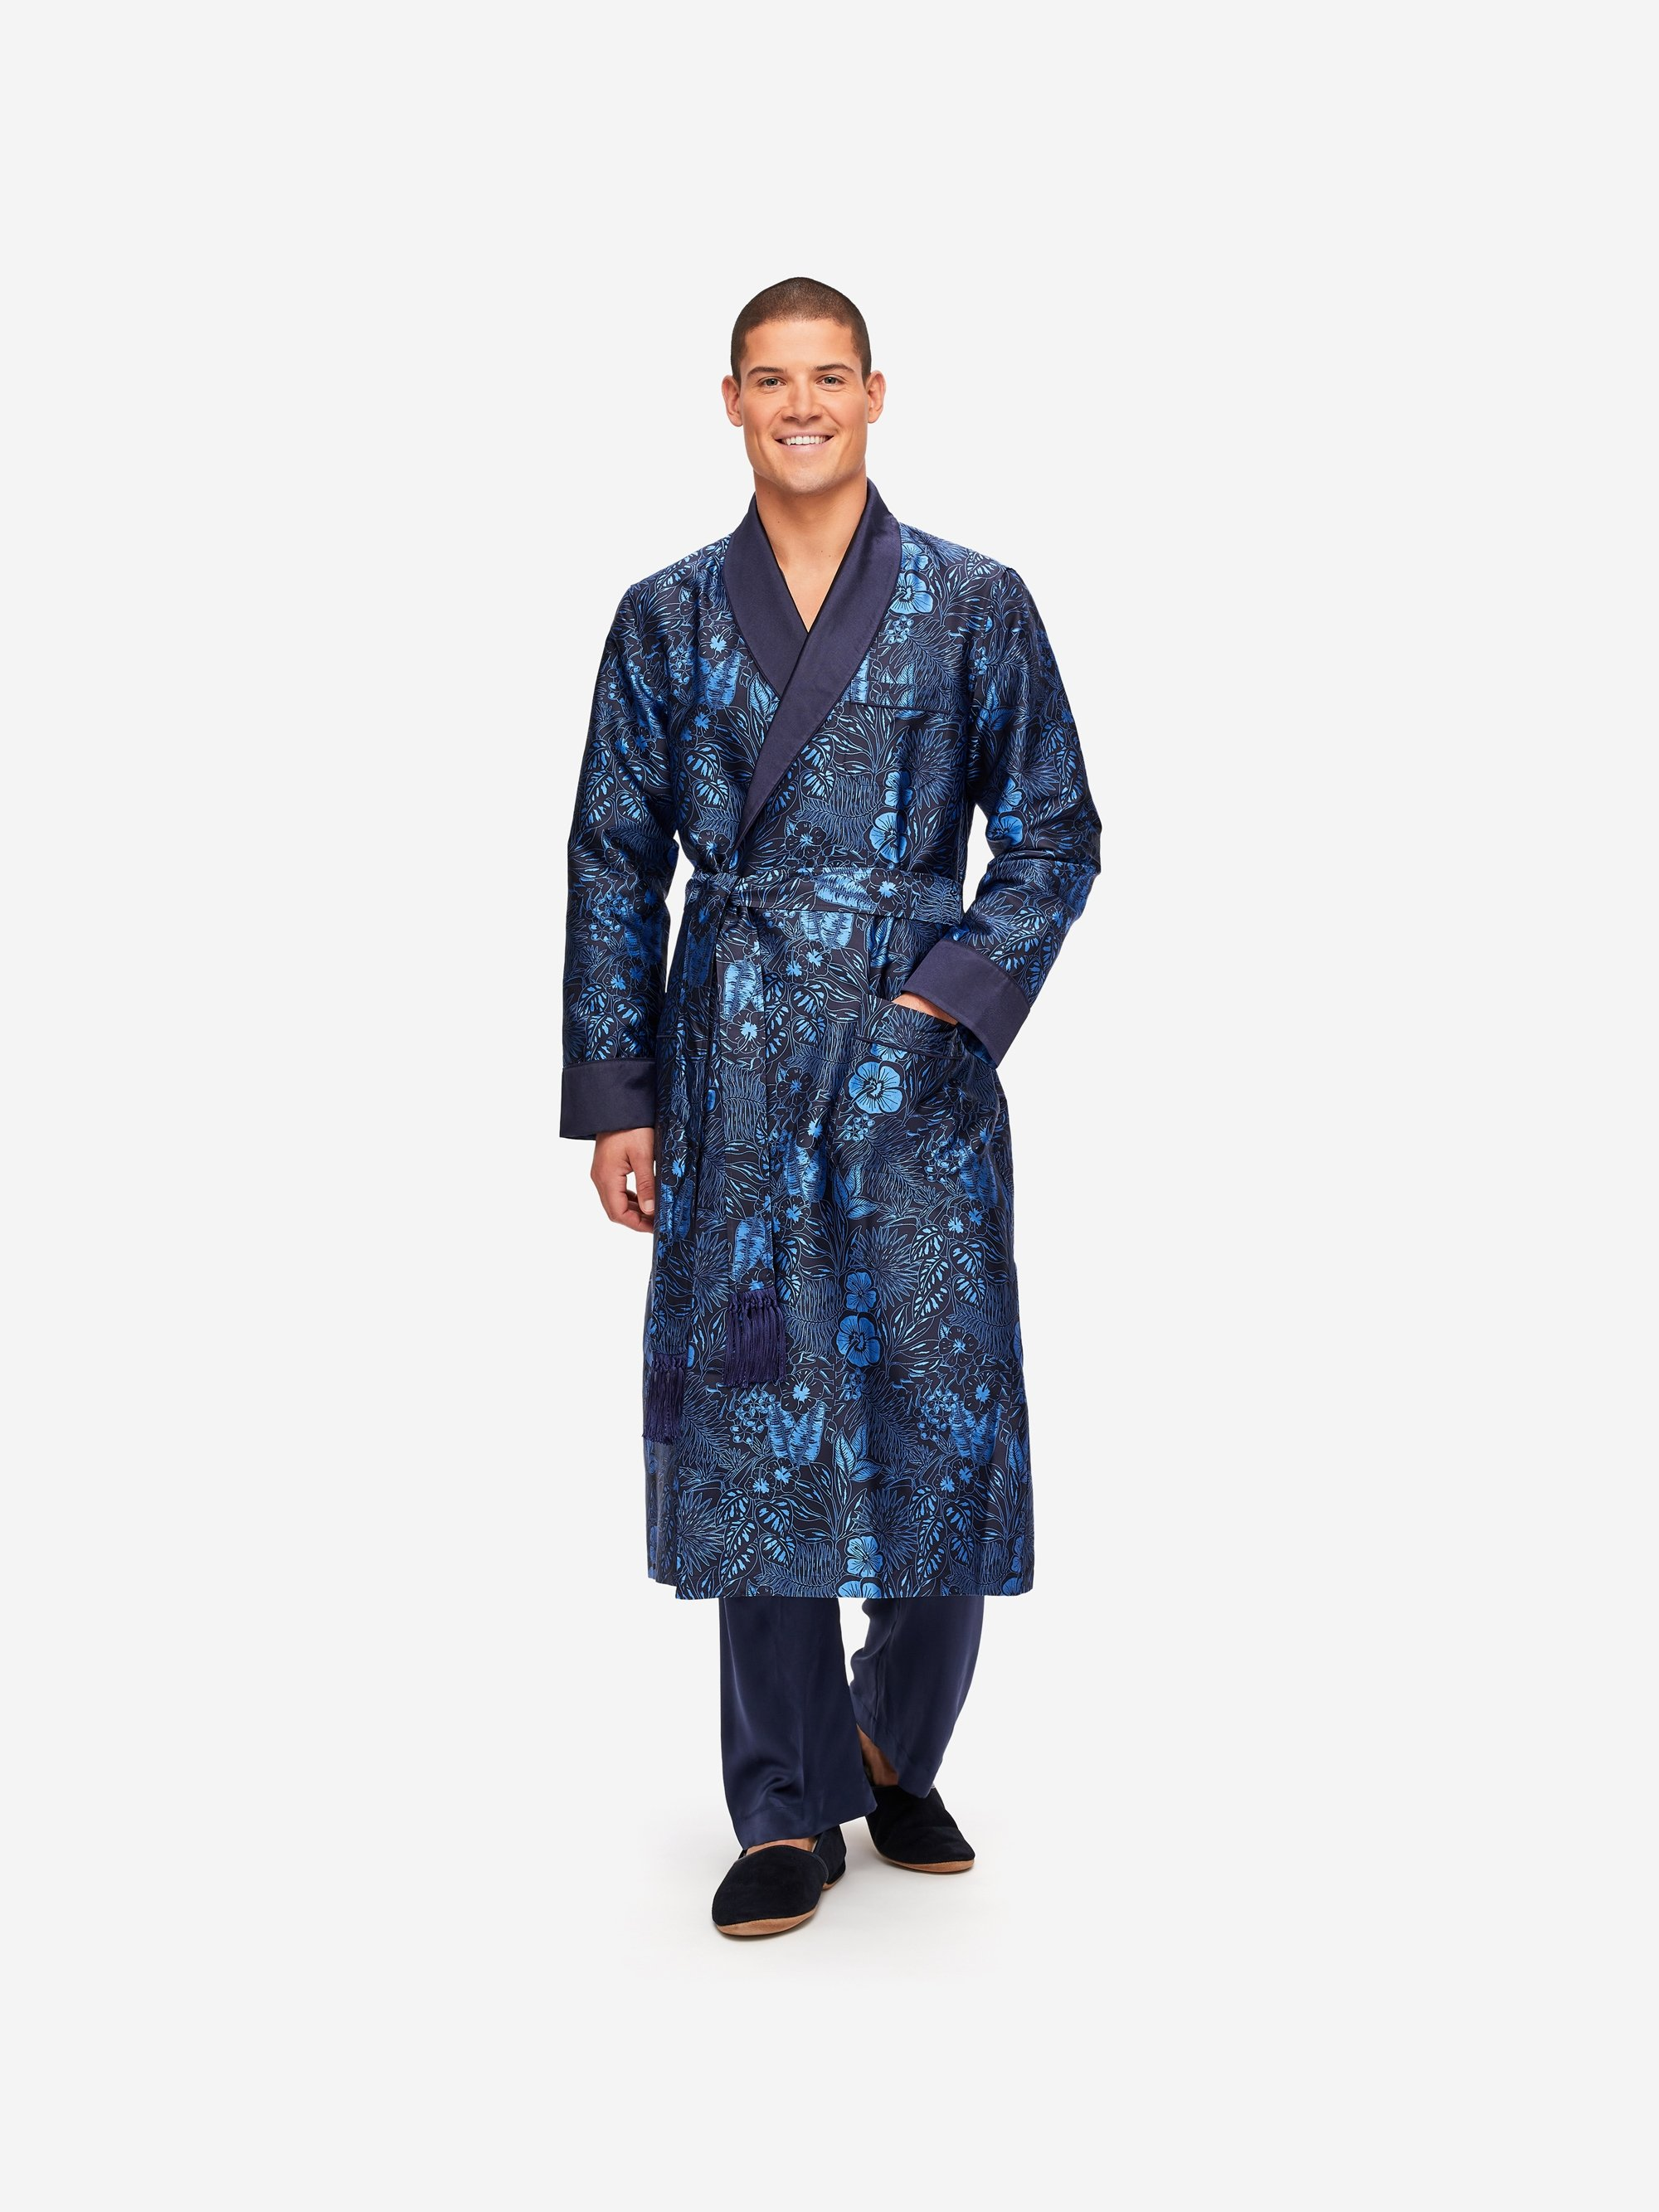 Men's Tasseled Belt Dressing Gown Verona 52 Pure Silk Jacquard Navy